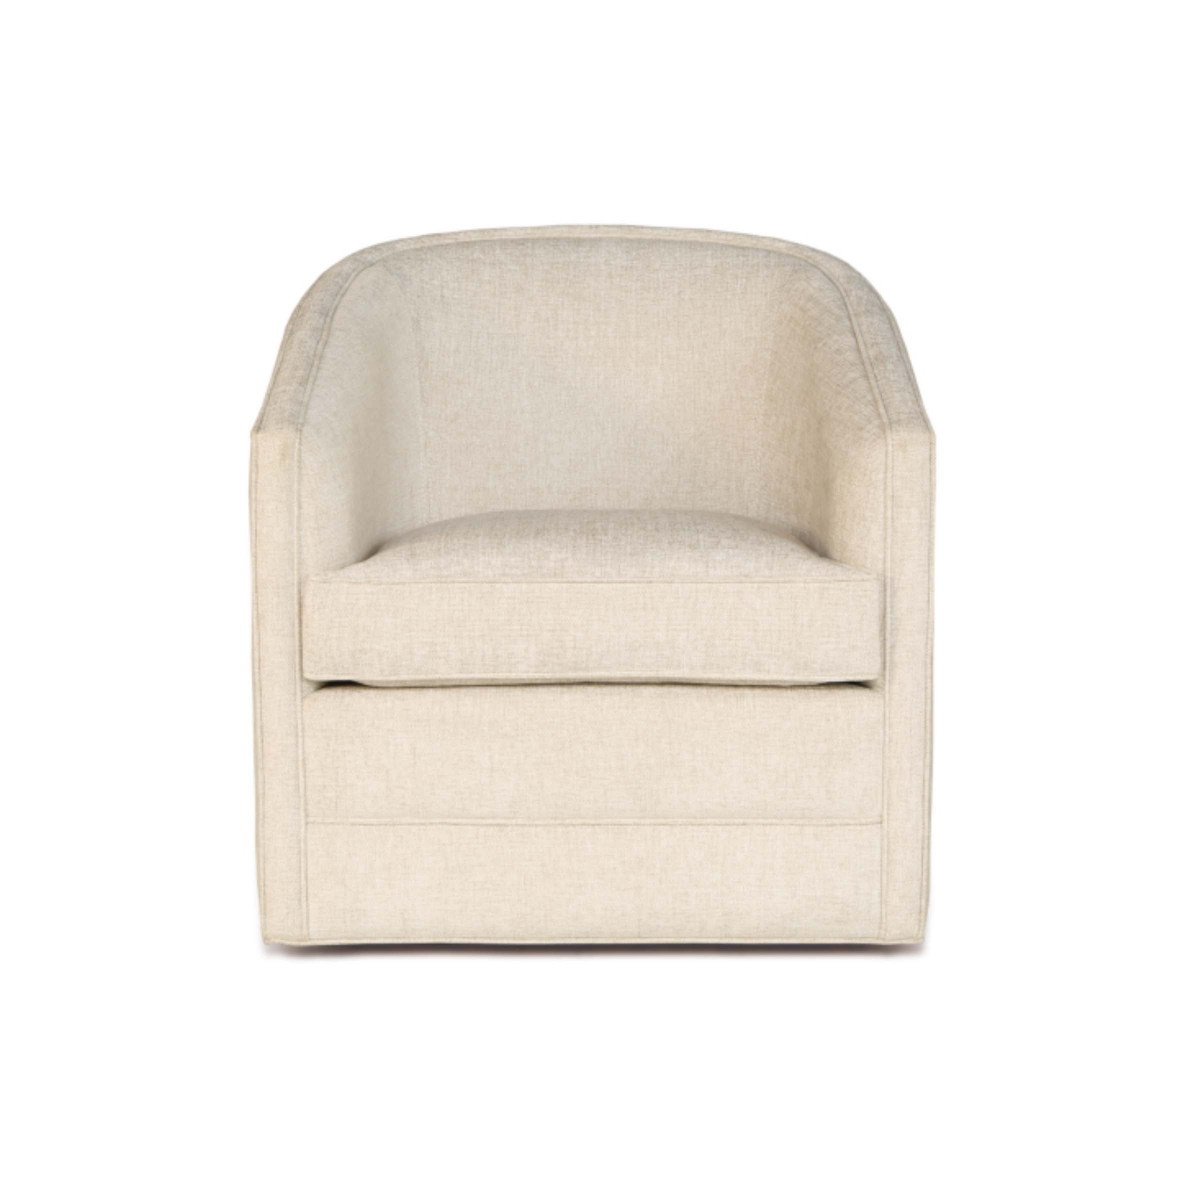 LEUCADIA - 6A Swivel Chair Rodez Sand